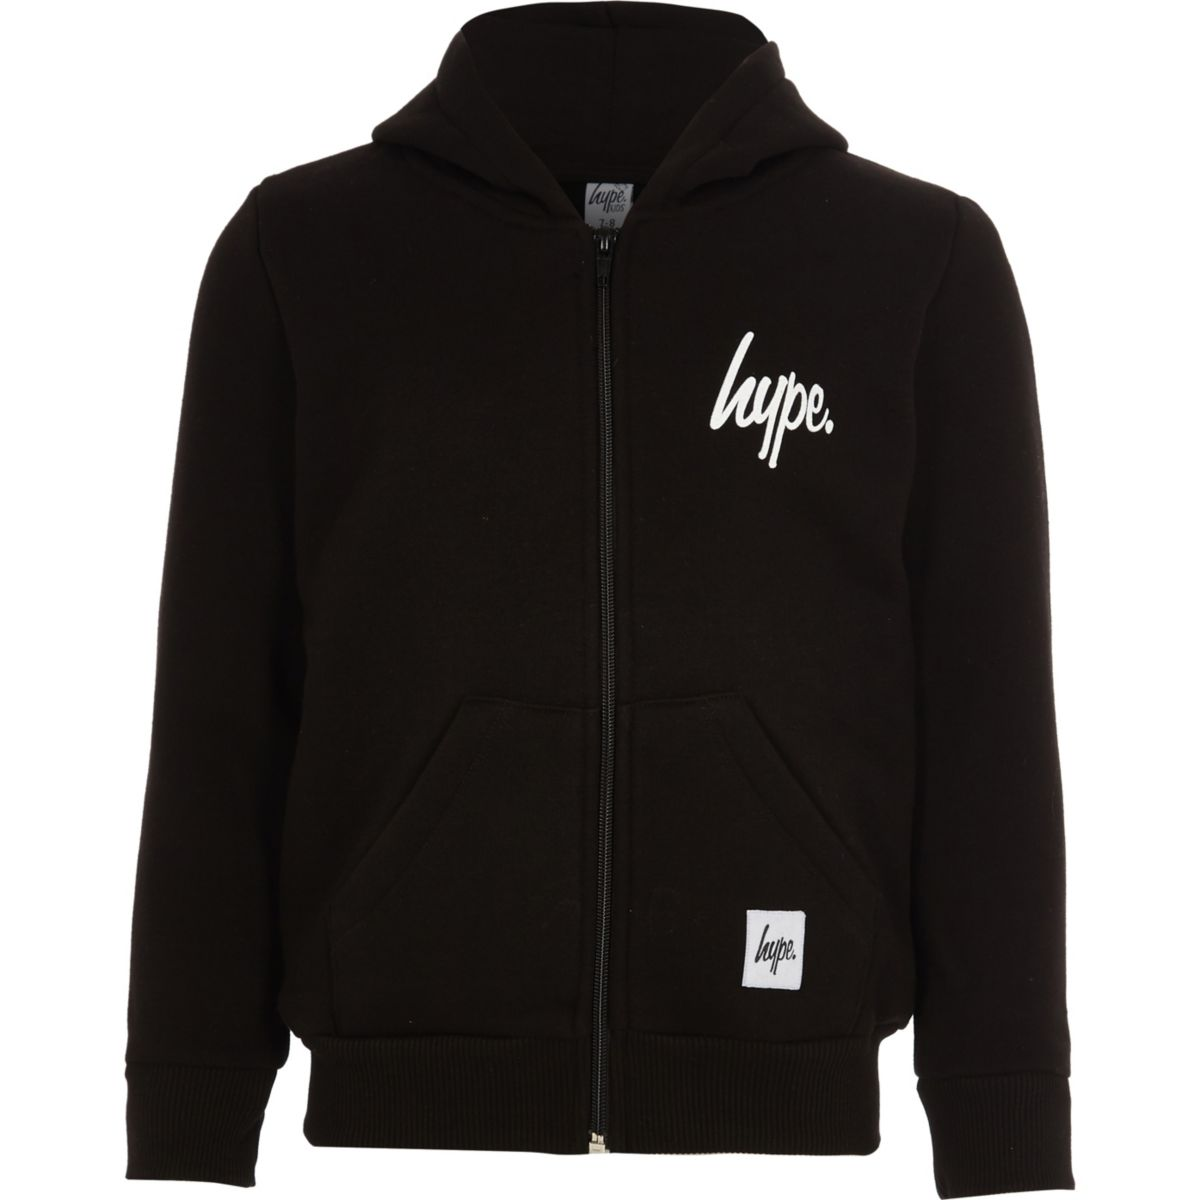 Kids Hype black zip-up hoodie